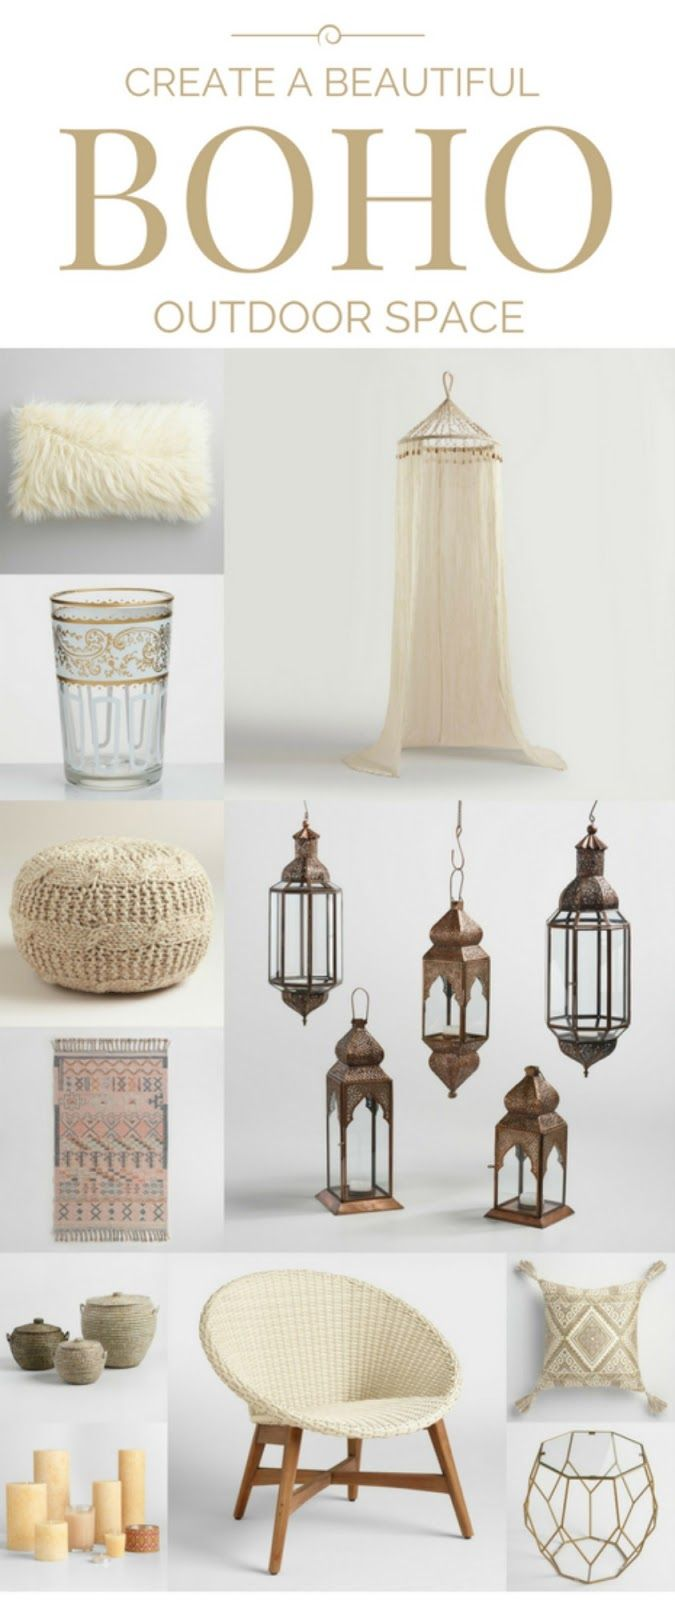 Boho Outdoor Decor via Fawn for Cost Plus World Market www.worldmarket.com